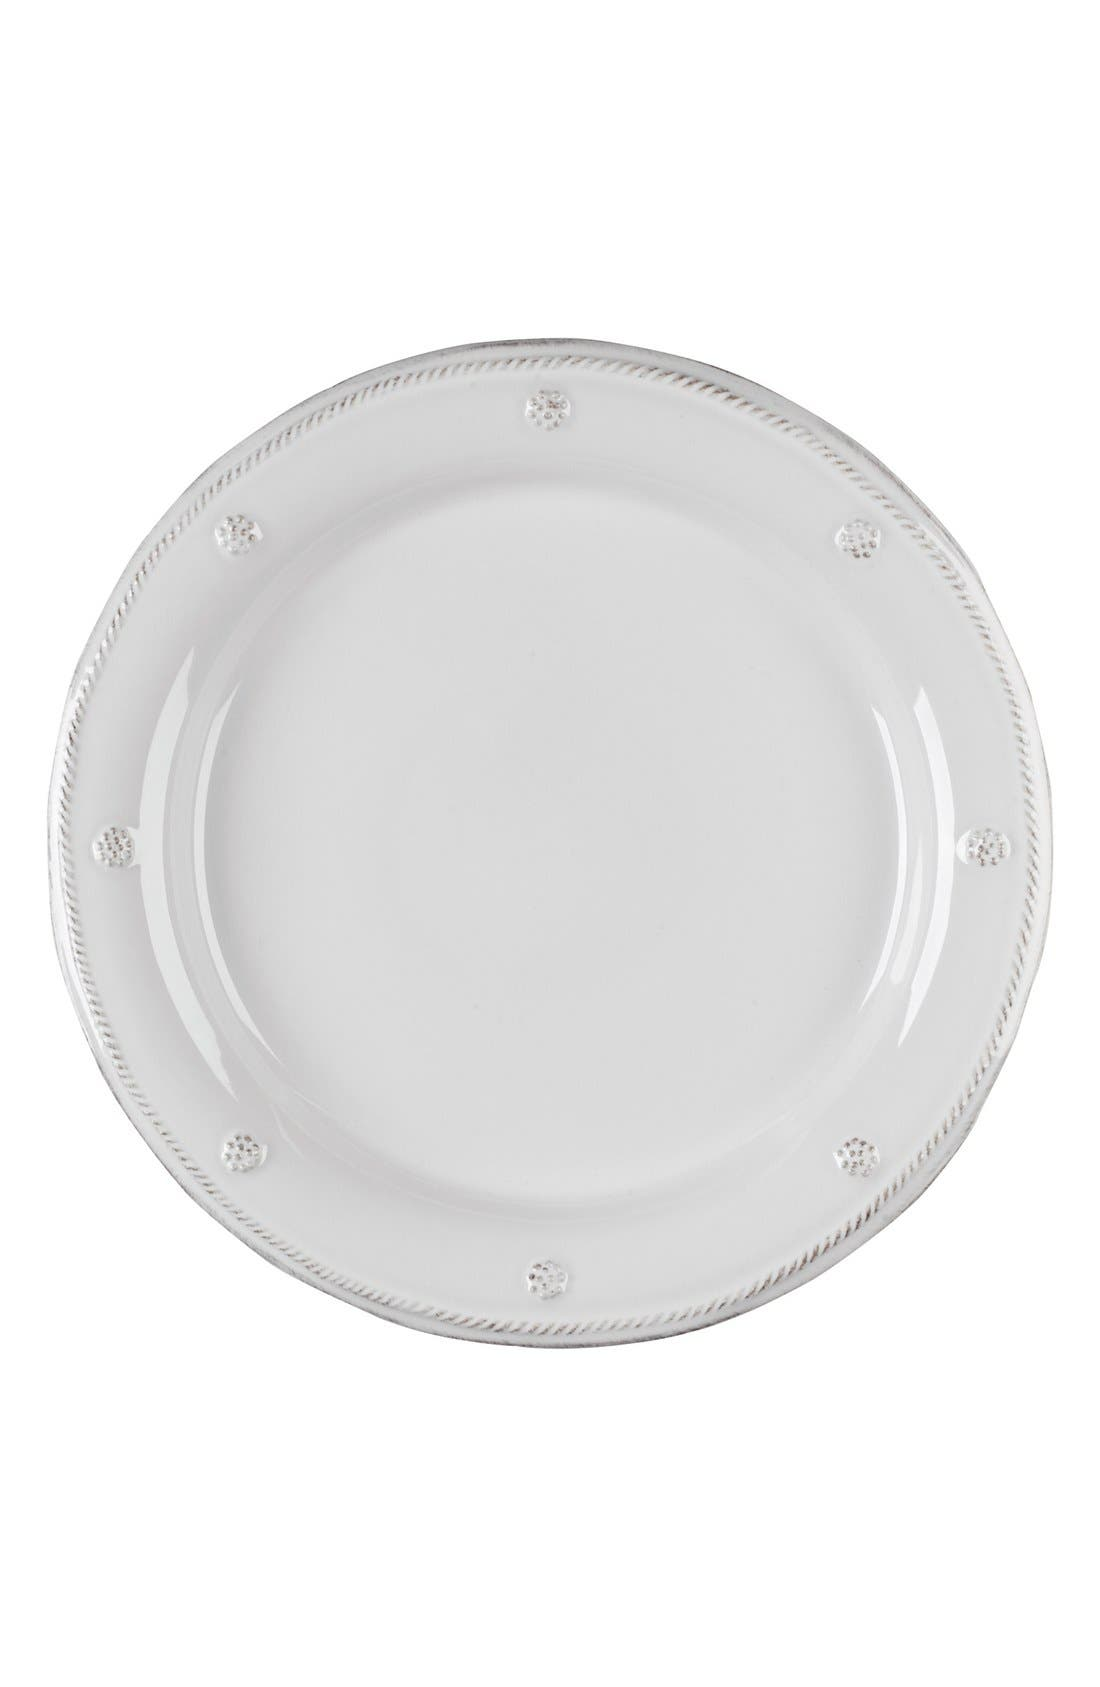 'Berry and Thread' Dinner Plate,                             Main thumbnail 1, color,                             Whitewash